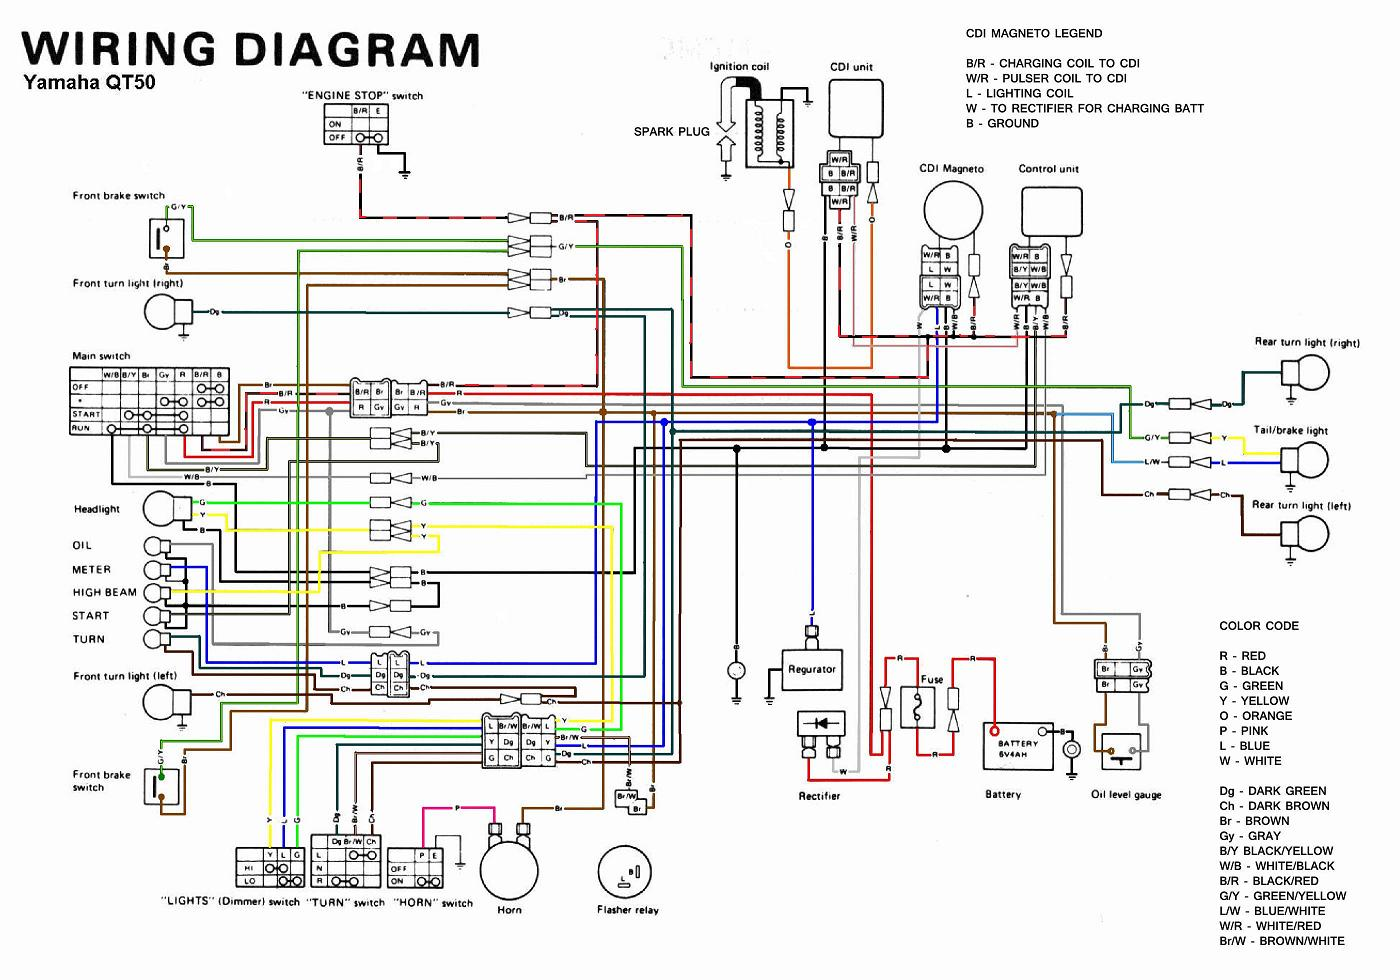 Yamaha QT50 Wiring Diagram yamaha qt50 wiring diagram yamaha qt50 luvin and other nopeds Dt Moto CA at n-0.co